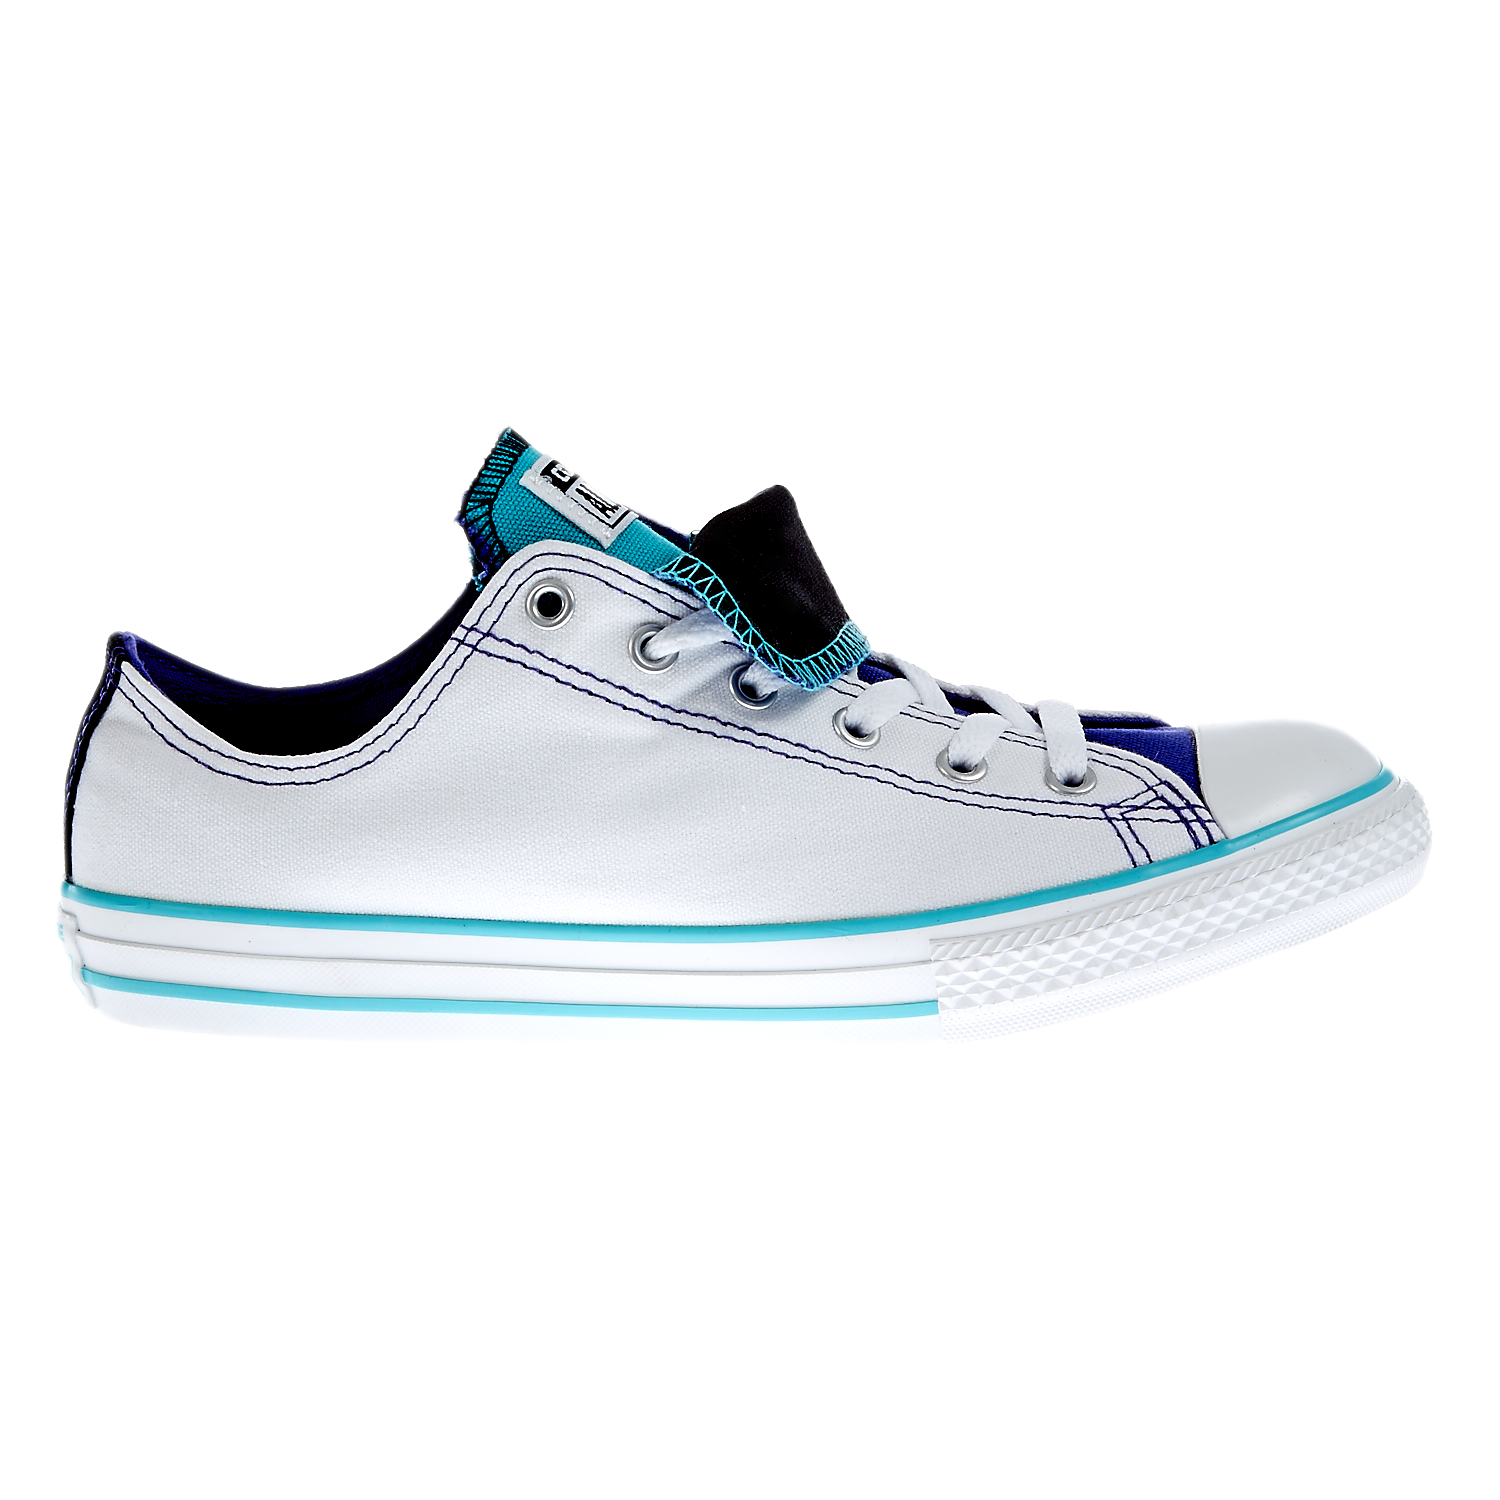 5d4a5459ae3 -52% Factory Outlet CONVERSE – Παιδικά παπούτσια Chuck Taylor λευκά